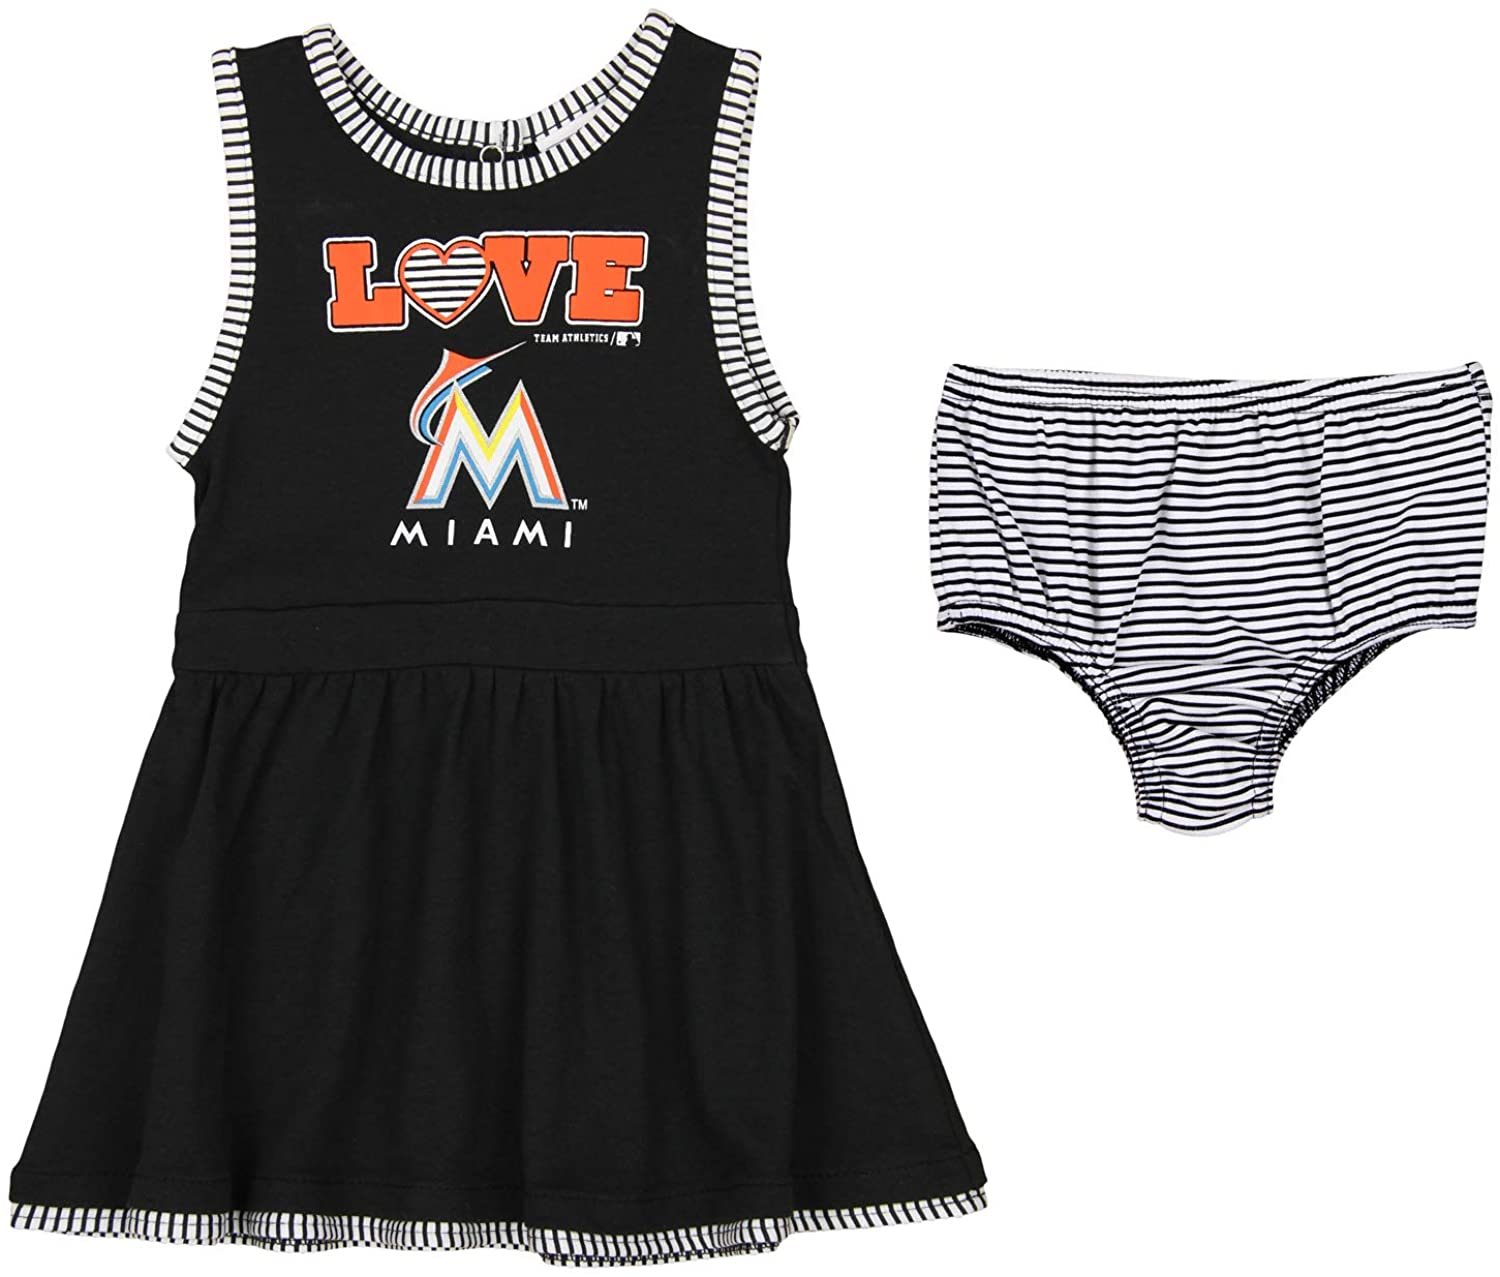 OuterStuff MLB Infant (12M-24M) Through Toddler (2T-4T) Tank Dress, Miami Marlins 2T